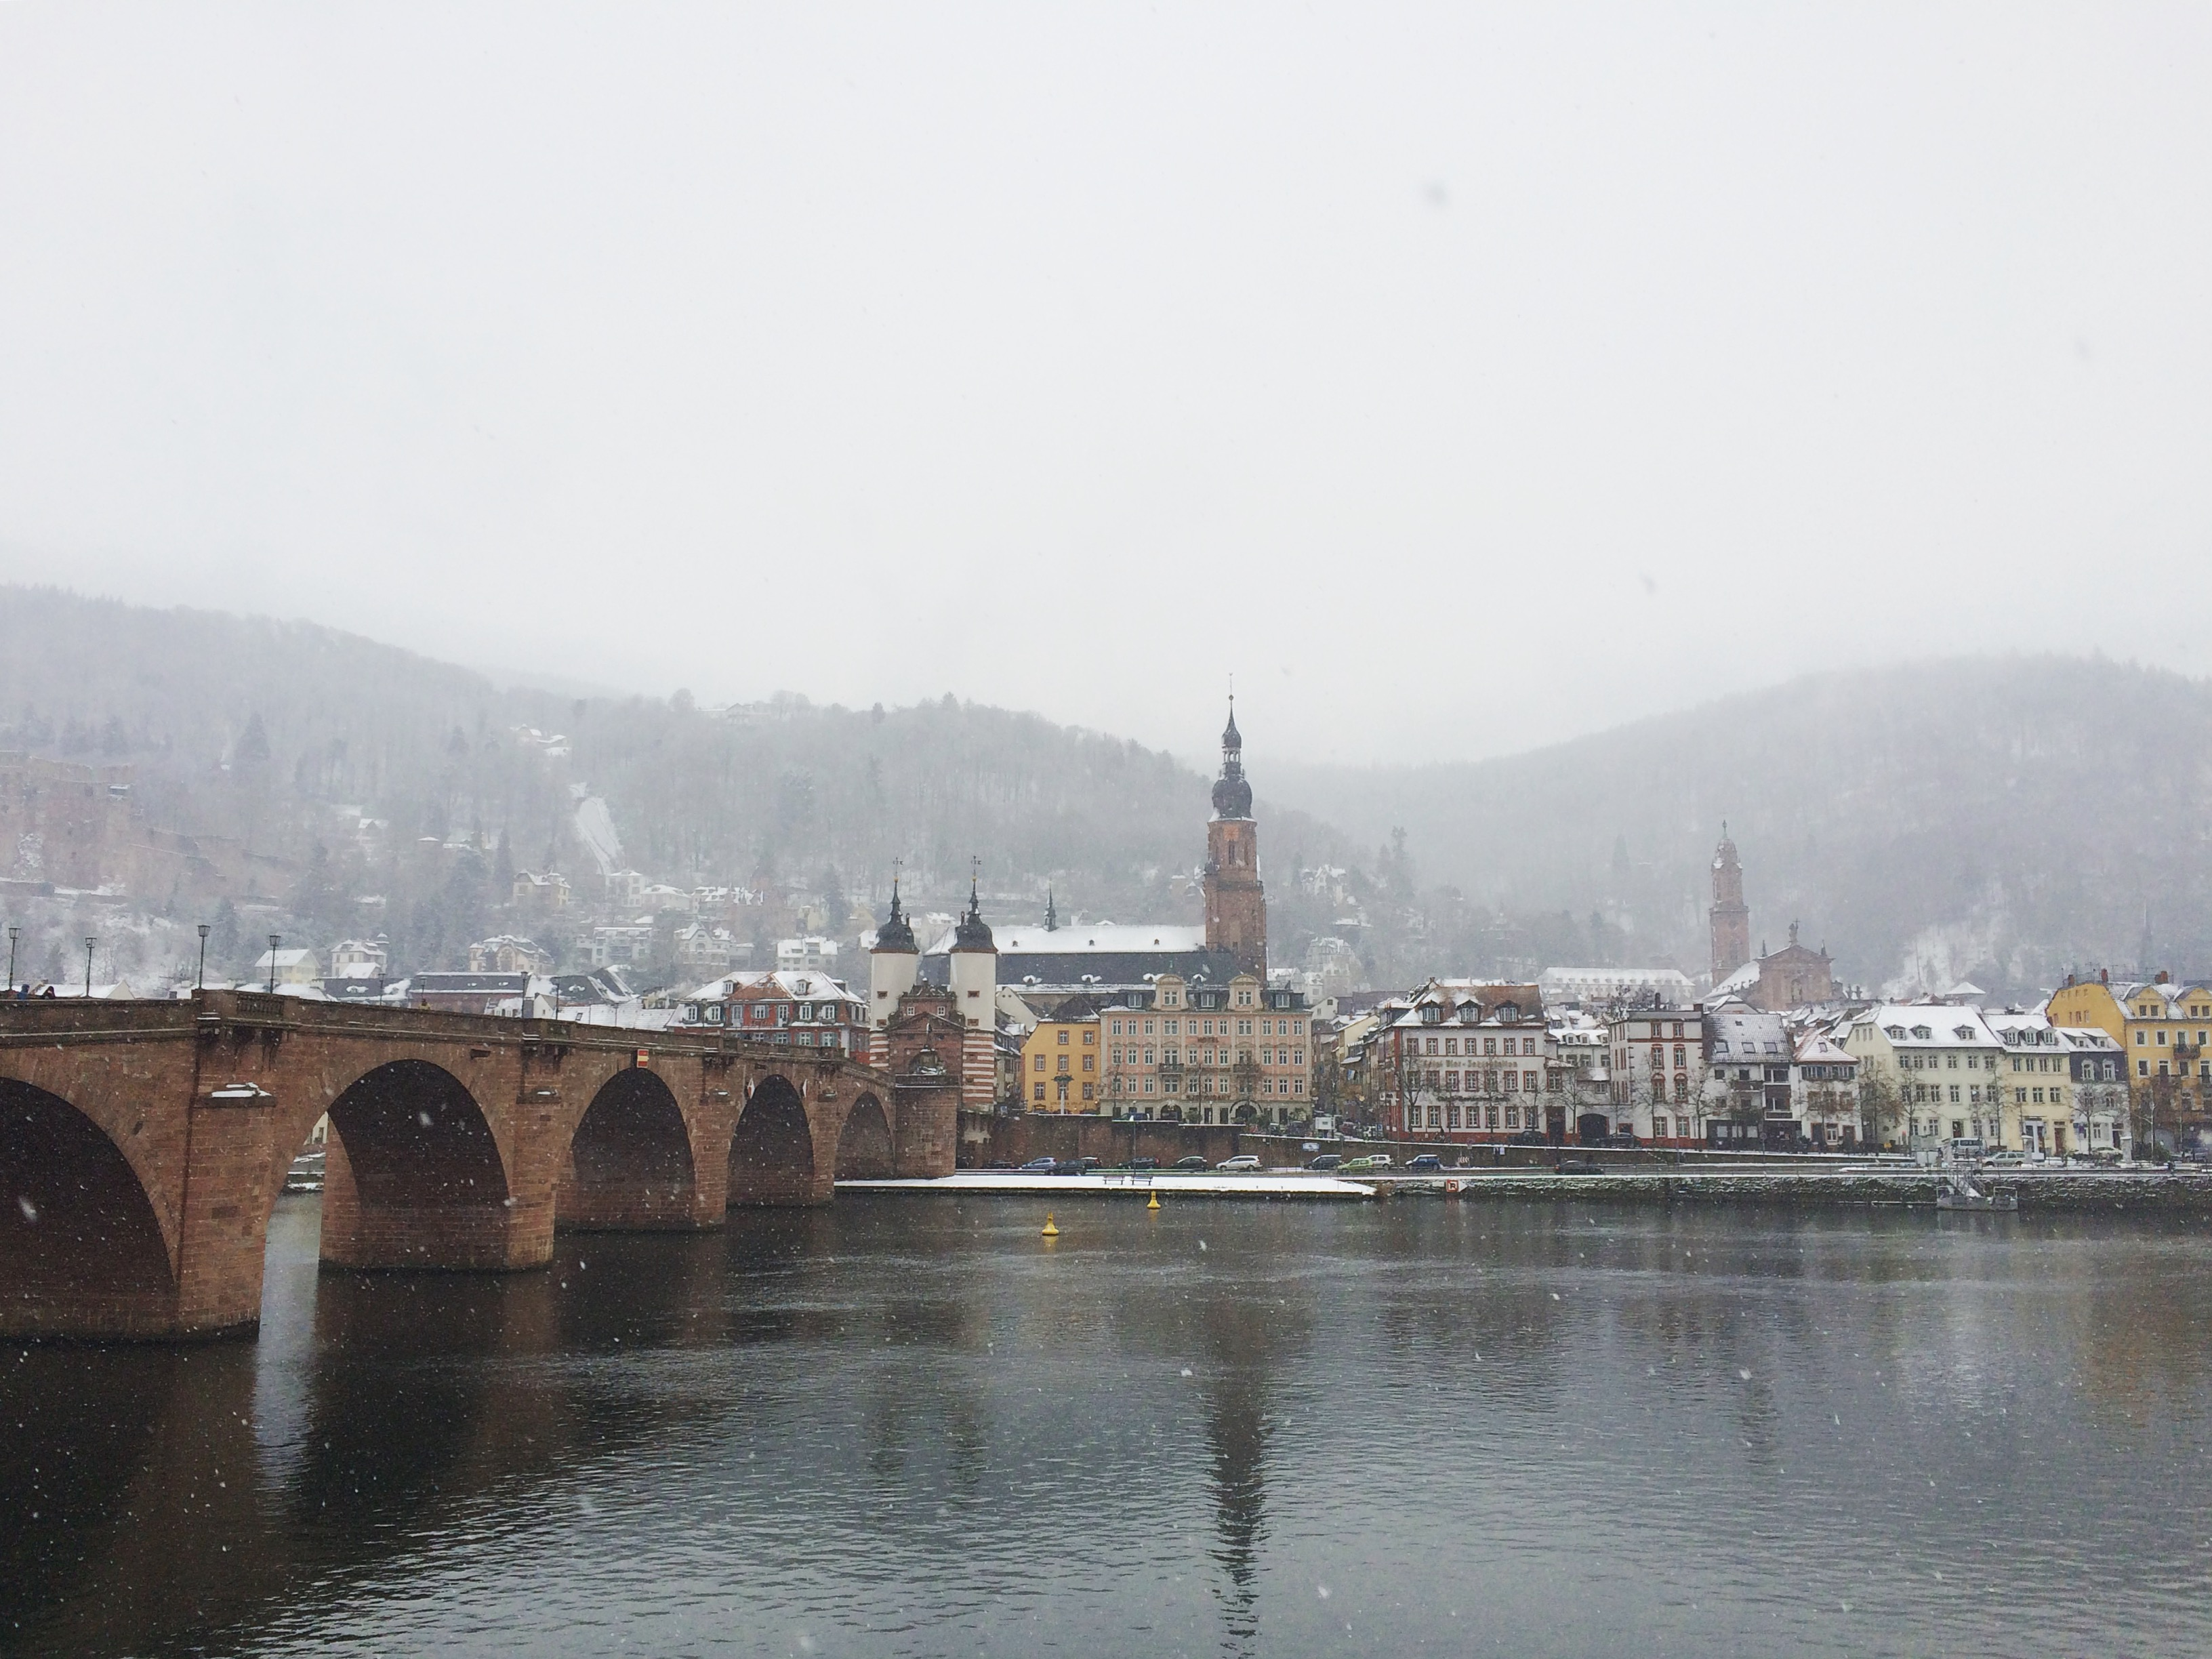 The Most Romantic City in Germany